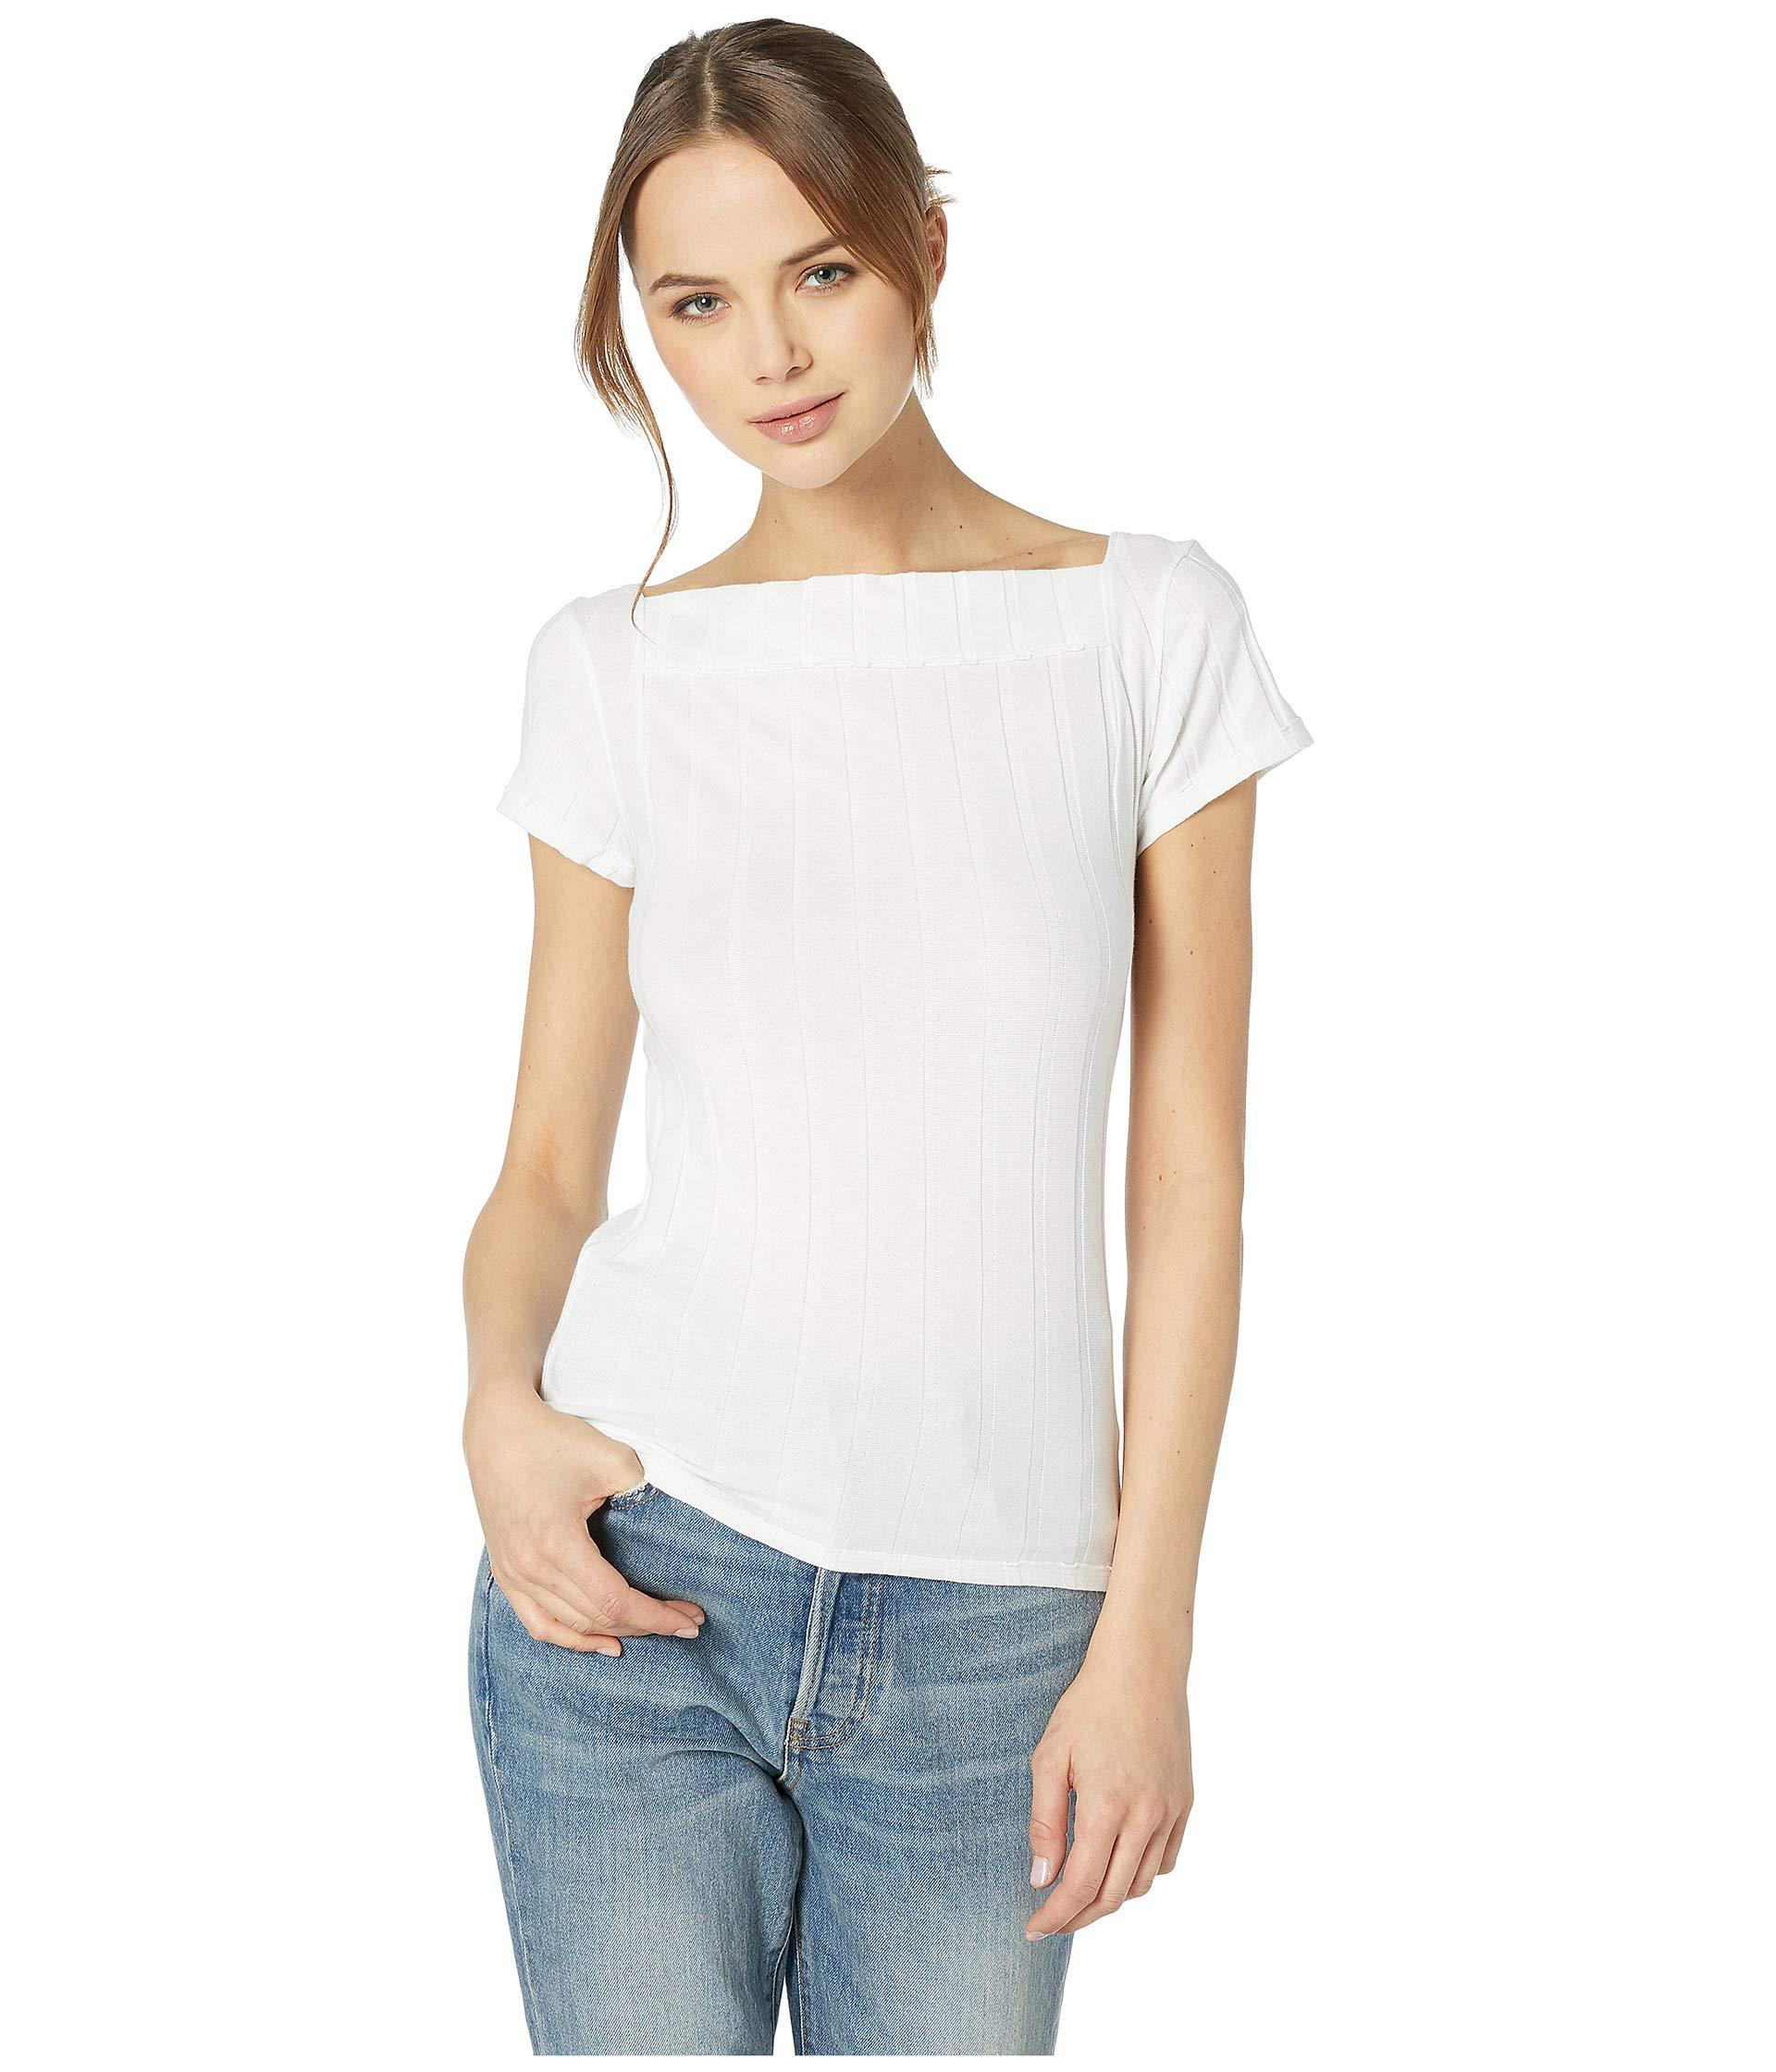 95a98ffb89ab0 Lyst - Free People Ahoy Solid Tee (ivory) Women s T Shirt in White